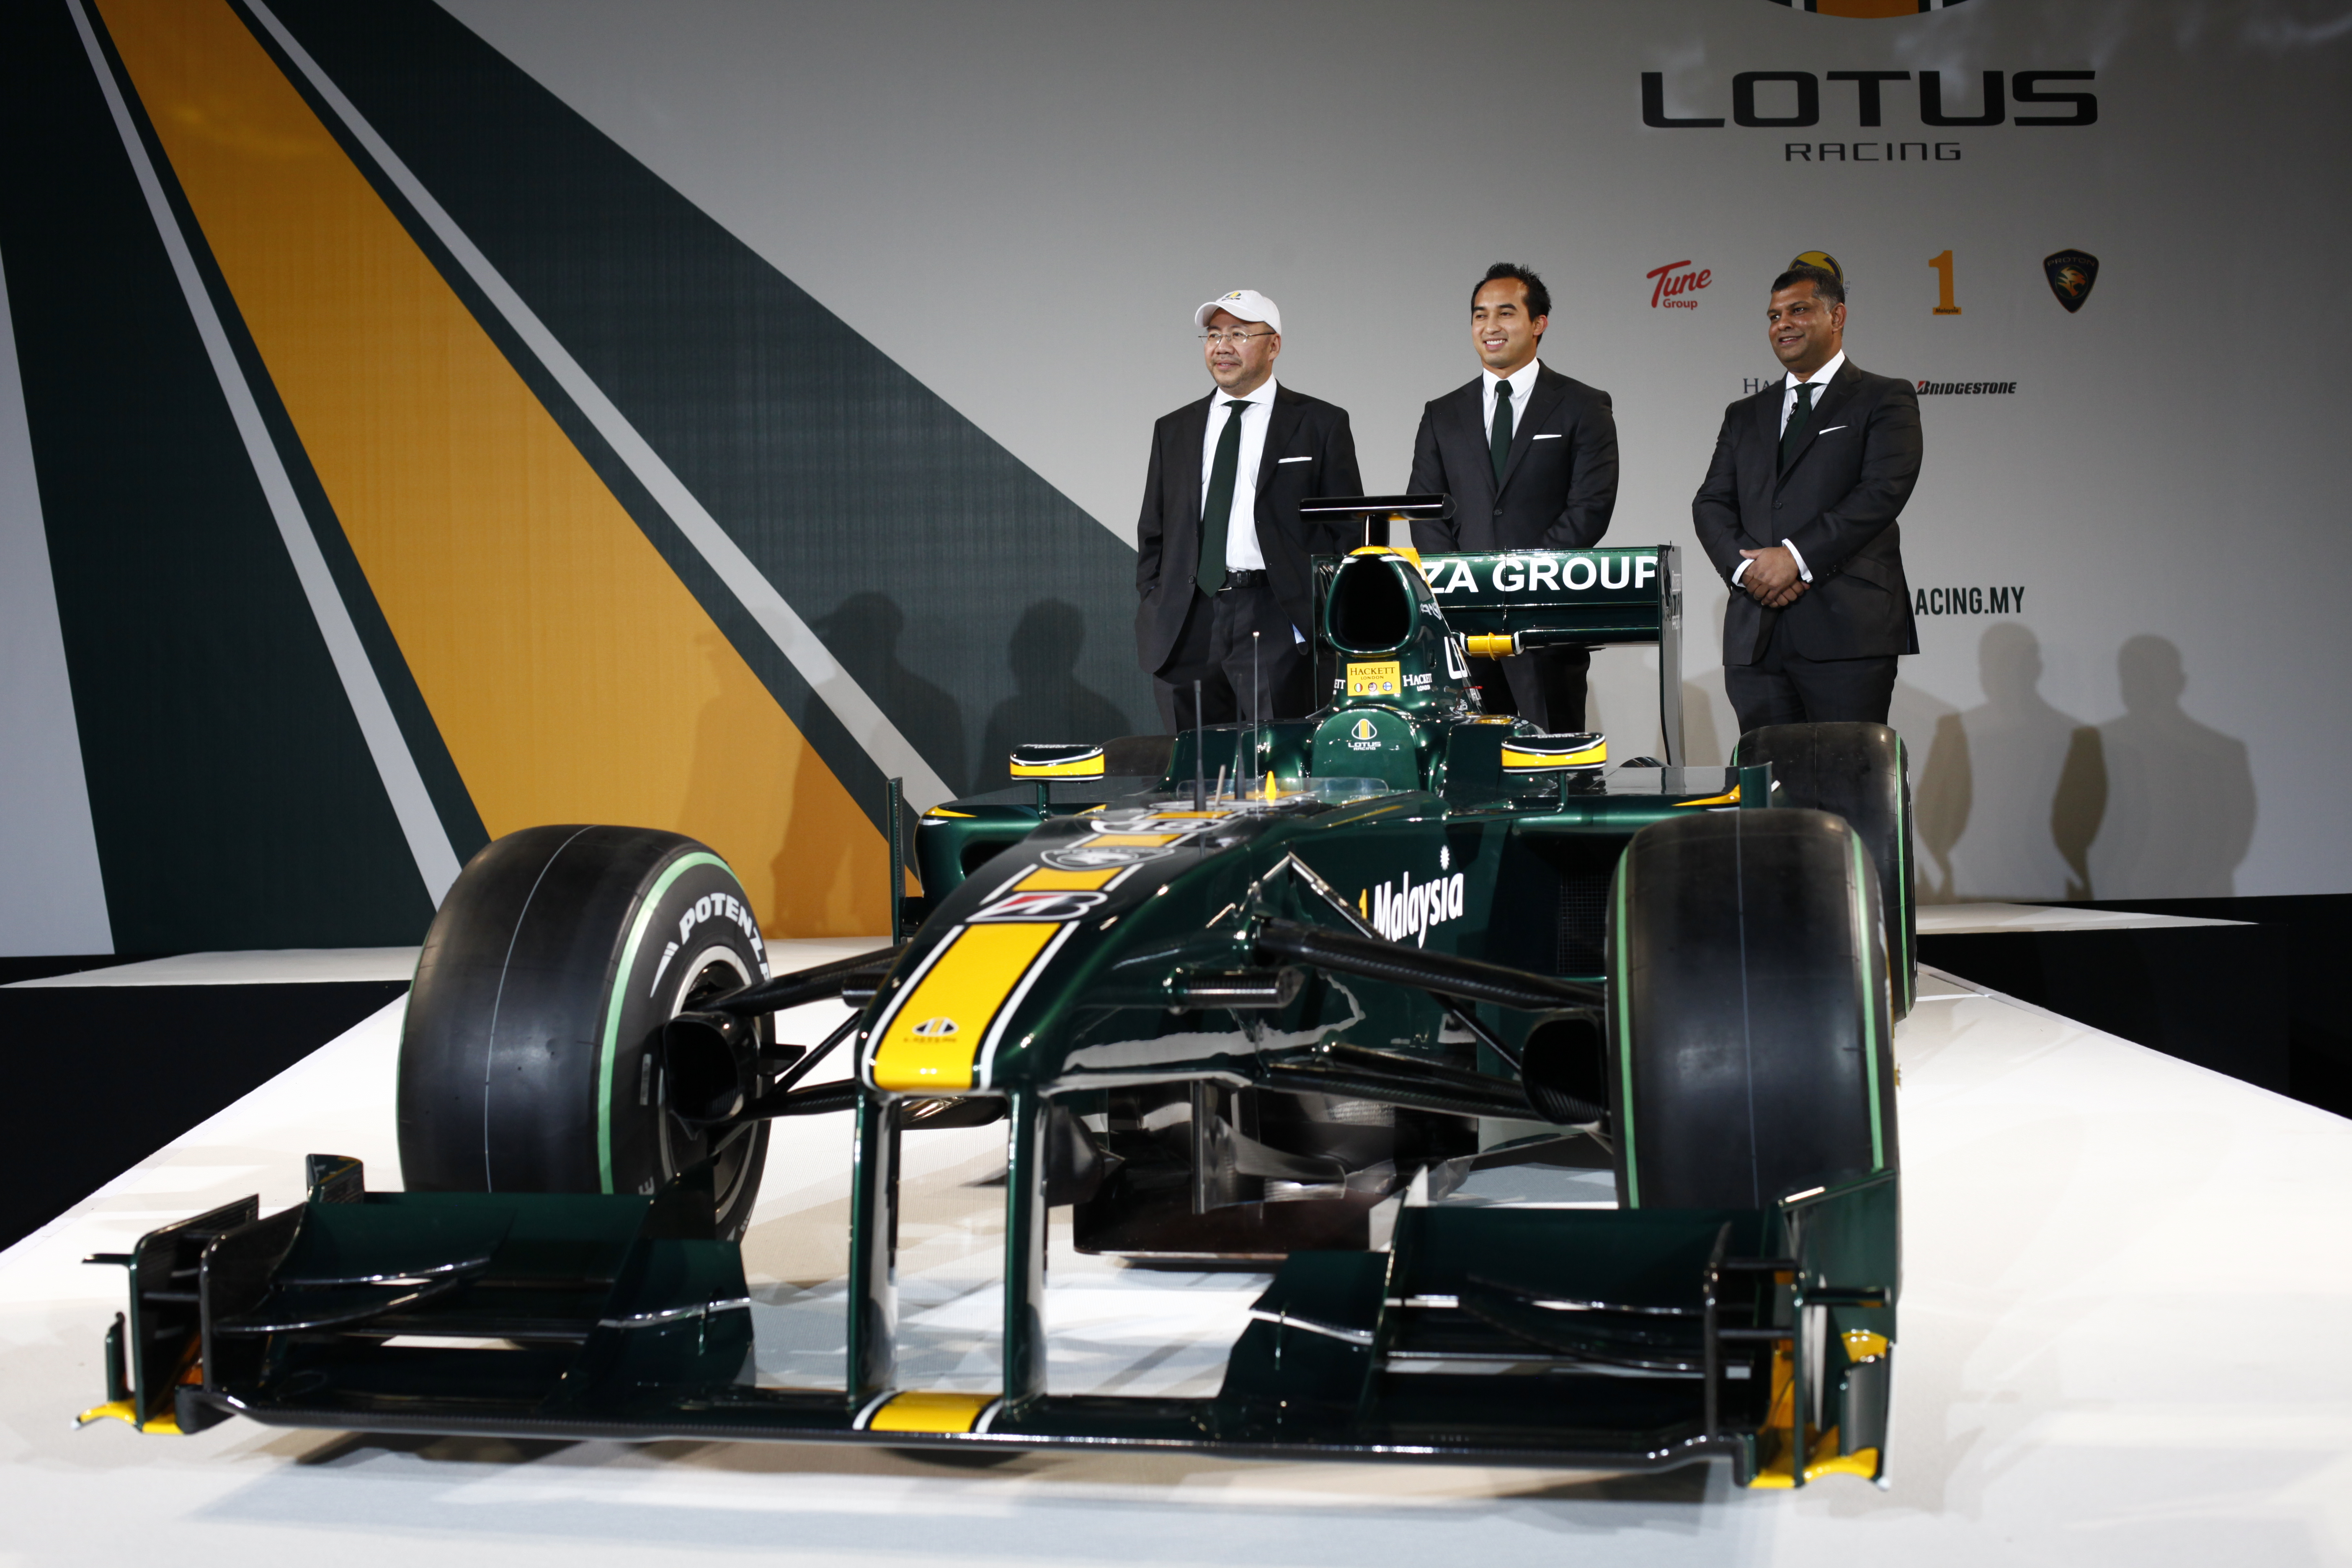 New Car Launch In Auto Expo